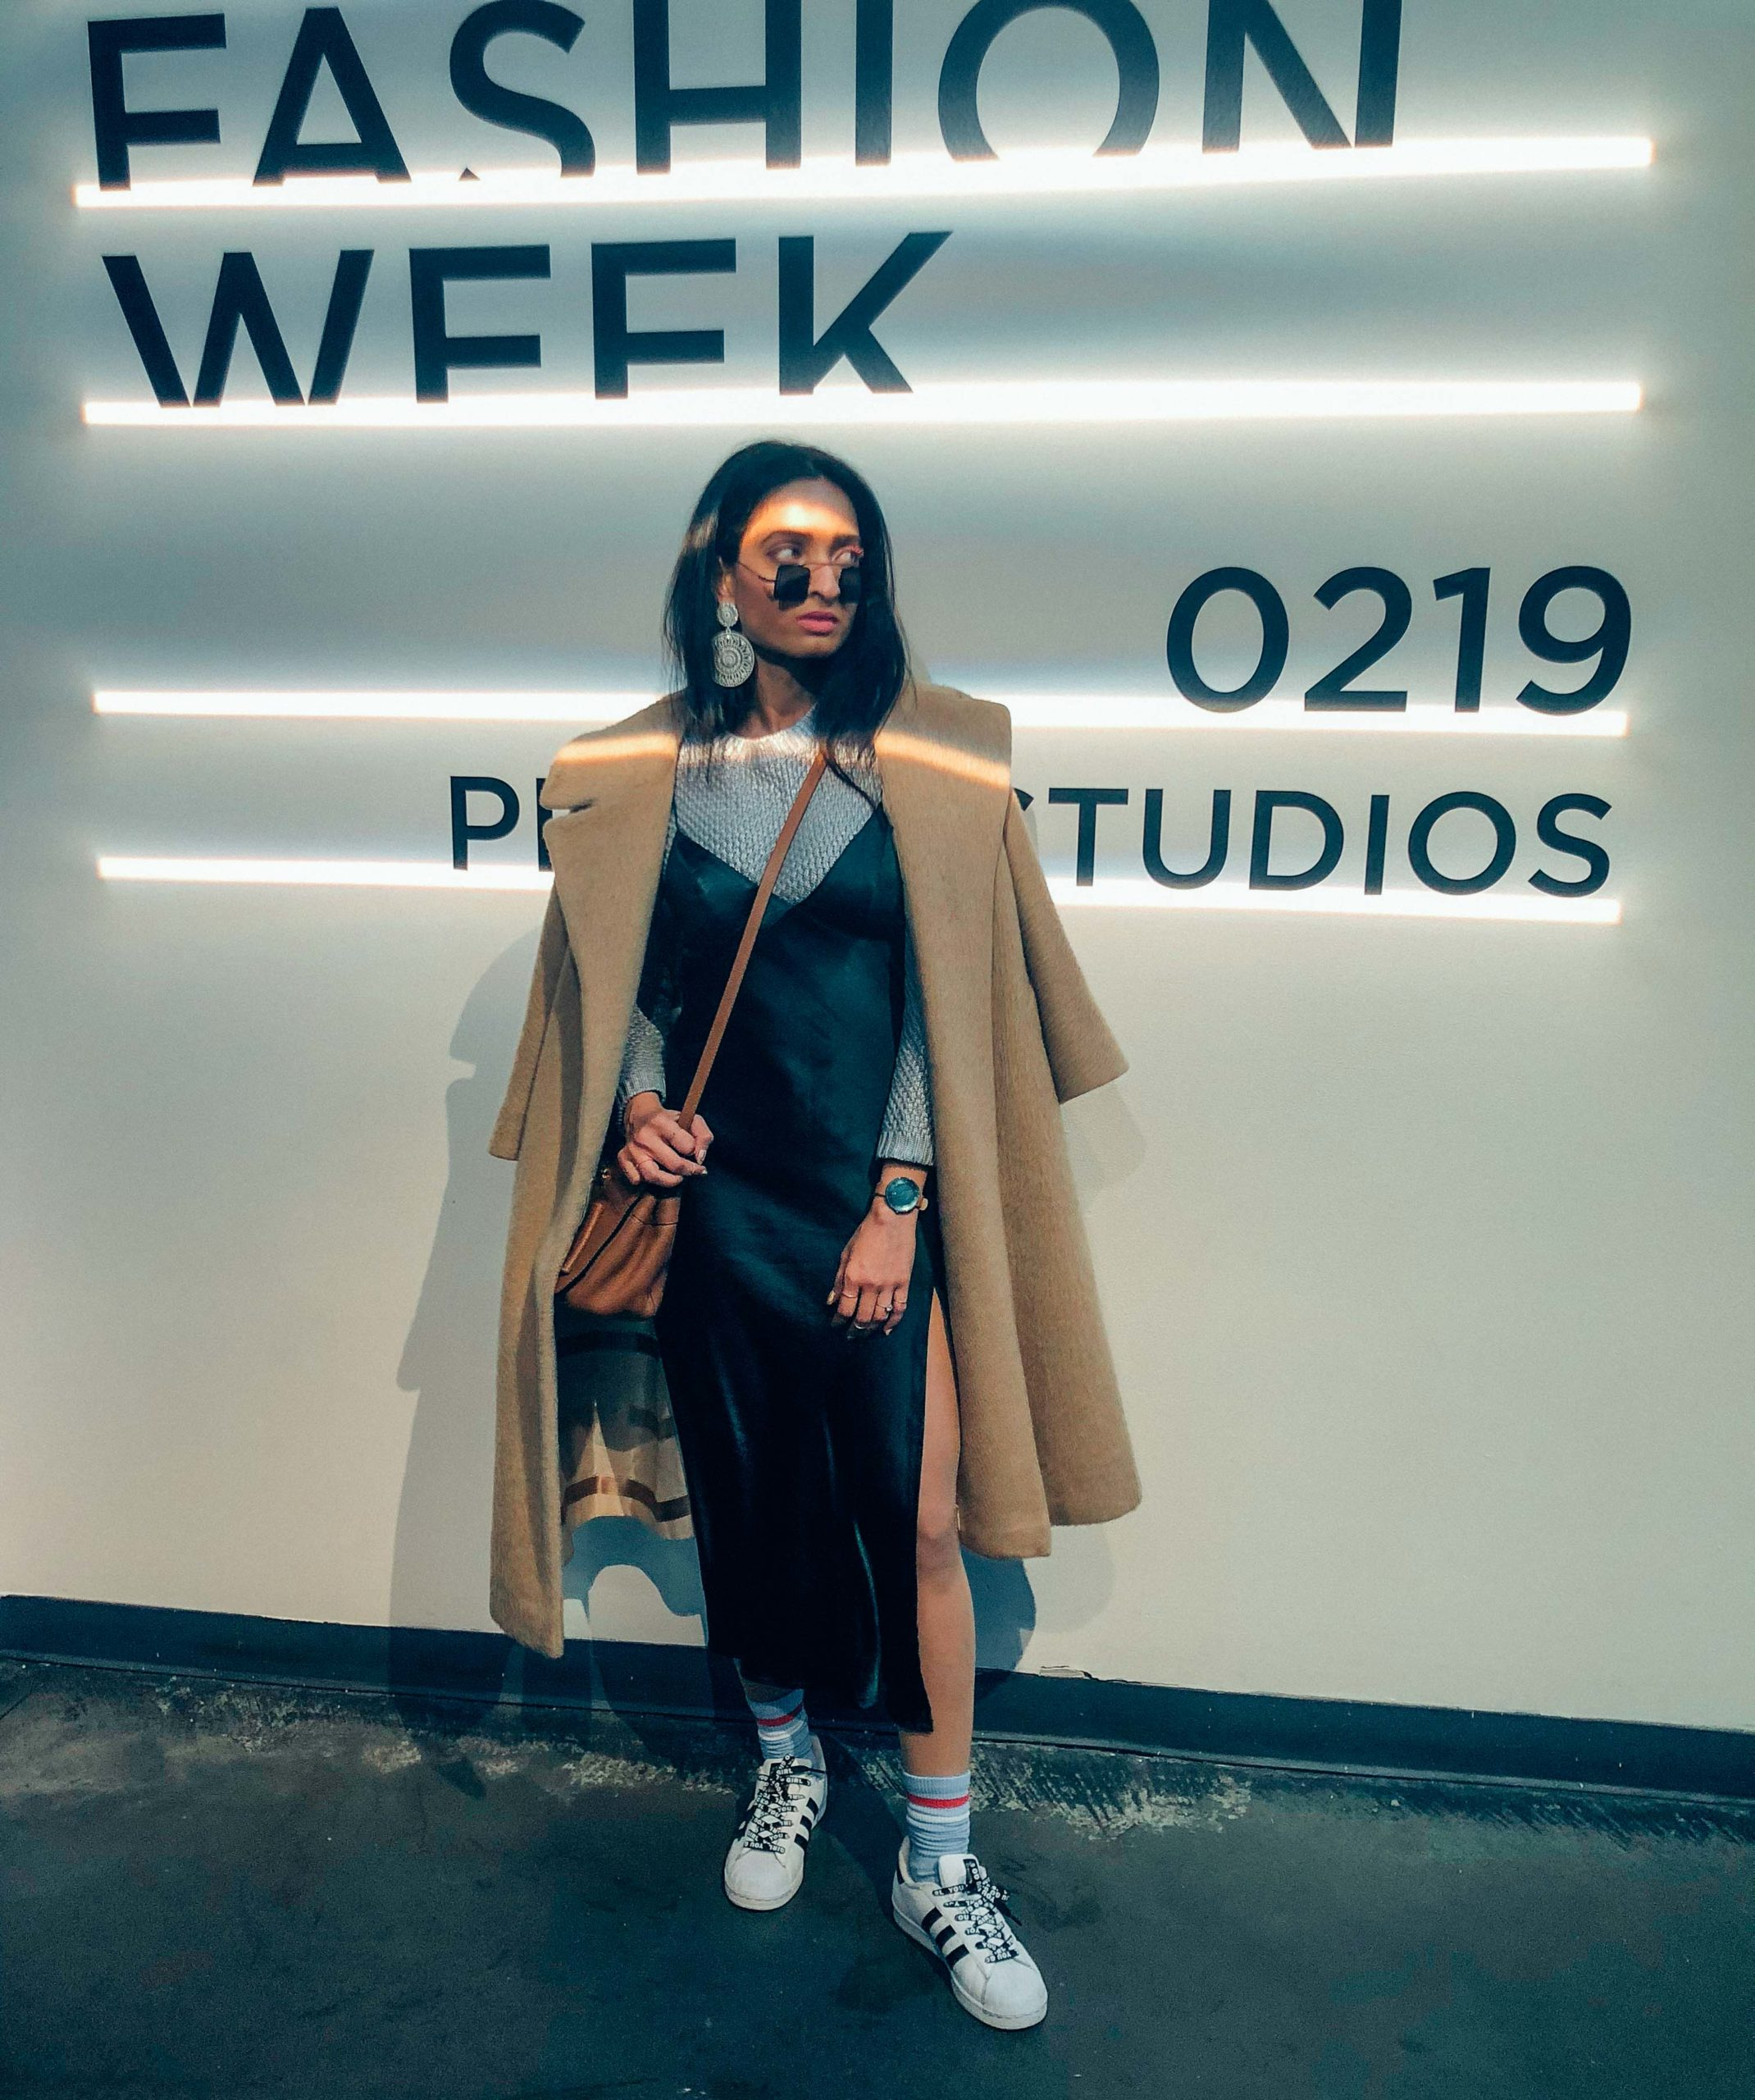 girl in green camisole dress and nude coat with sneakers standing in front of fashion week sign